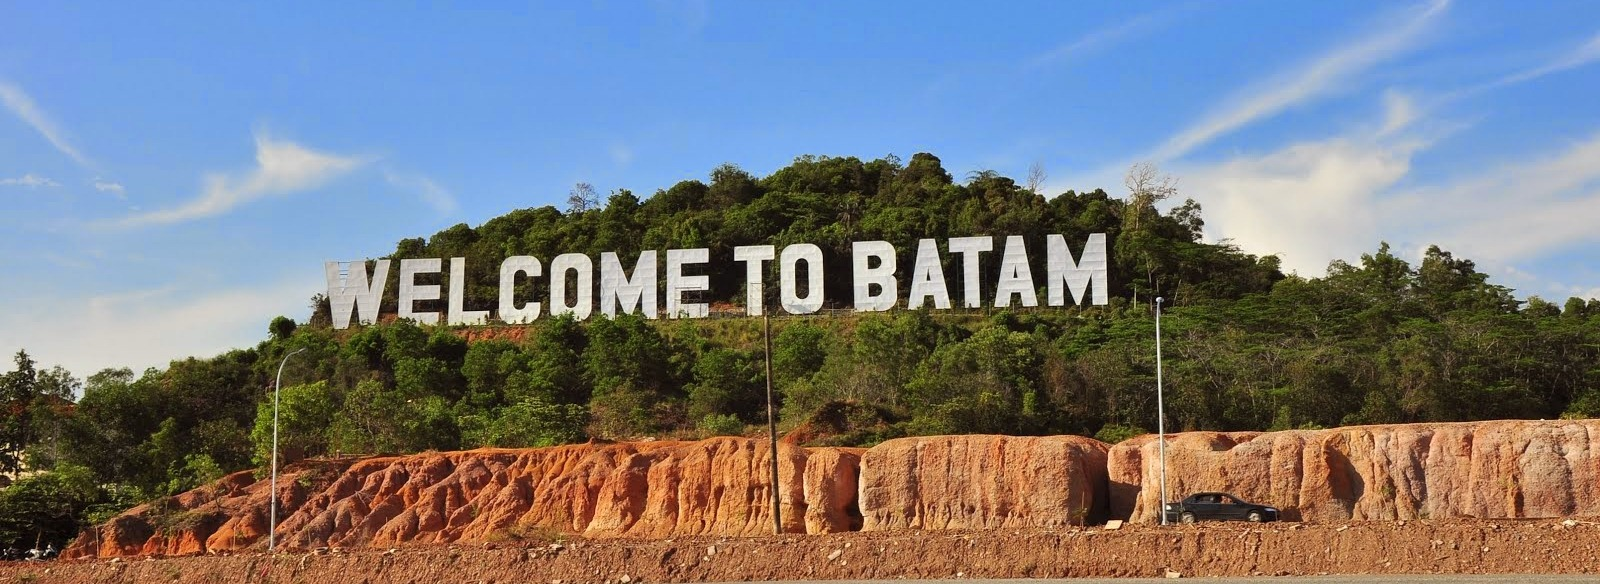 welcome-to-batam